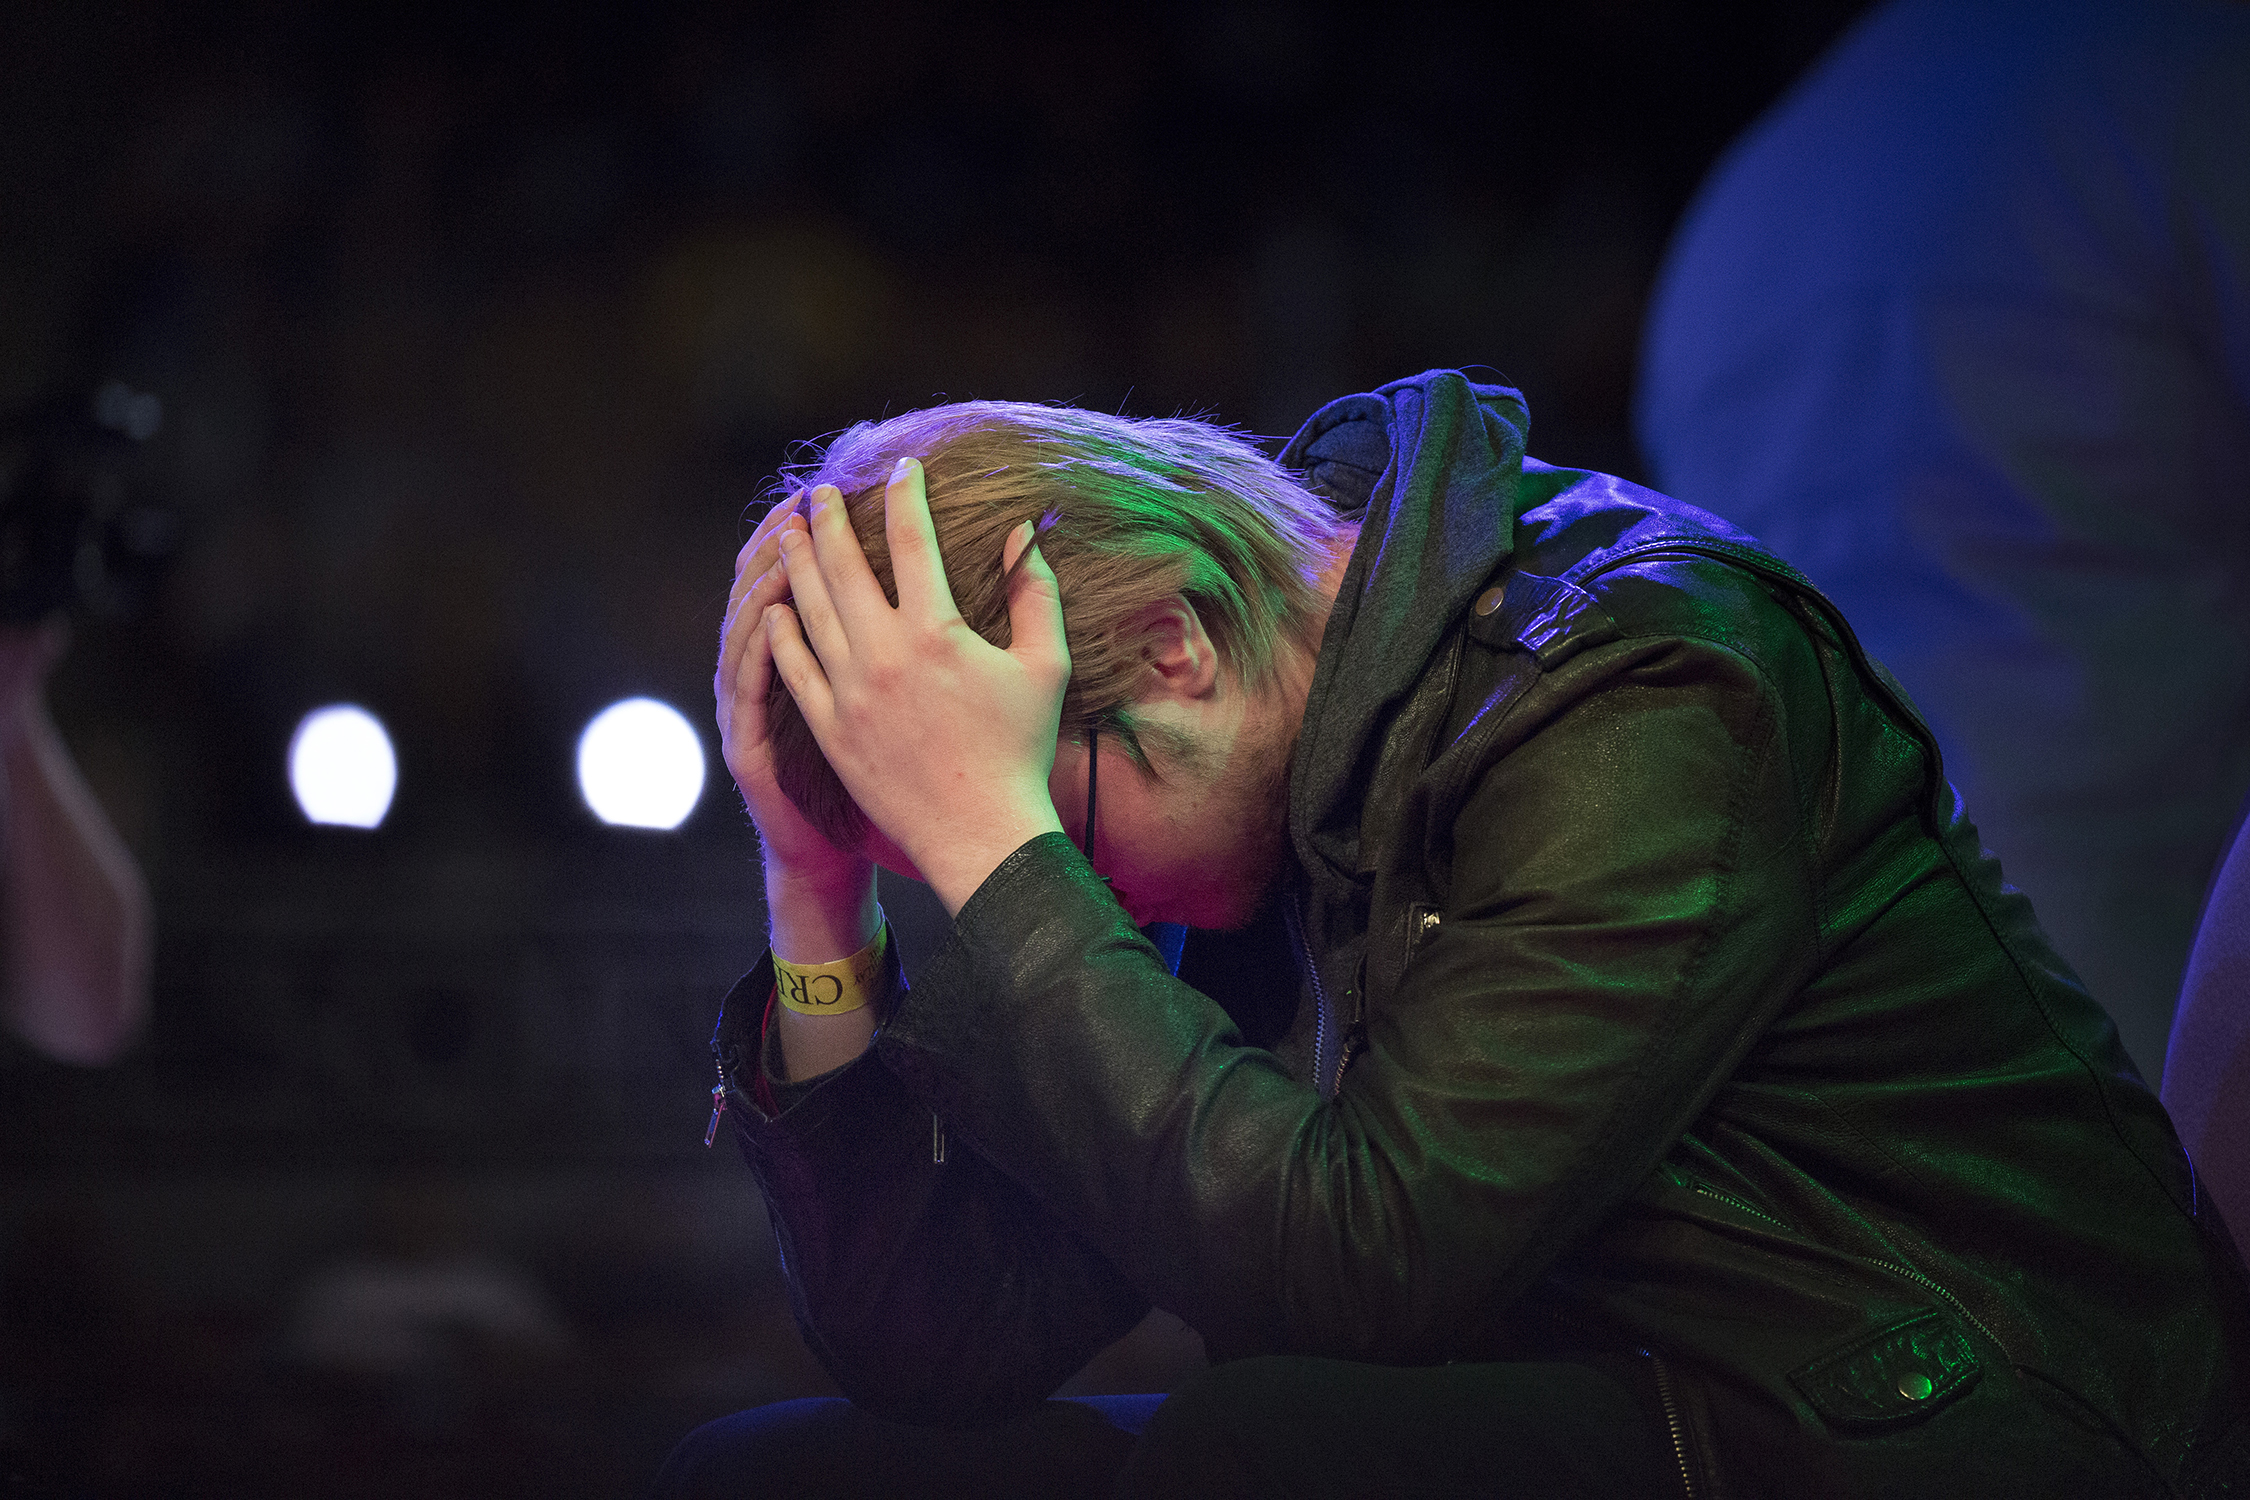 "A crestfallen moment for Adam ""Armada"" Lindgren after losing to Juan ""Hungrybox"" Debiedma. © Gail Fisher for ESPN"